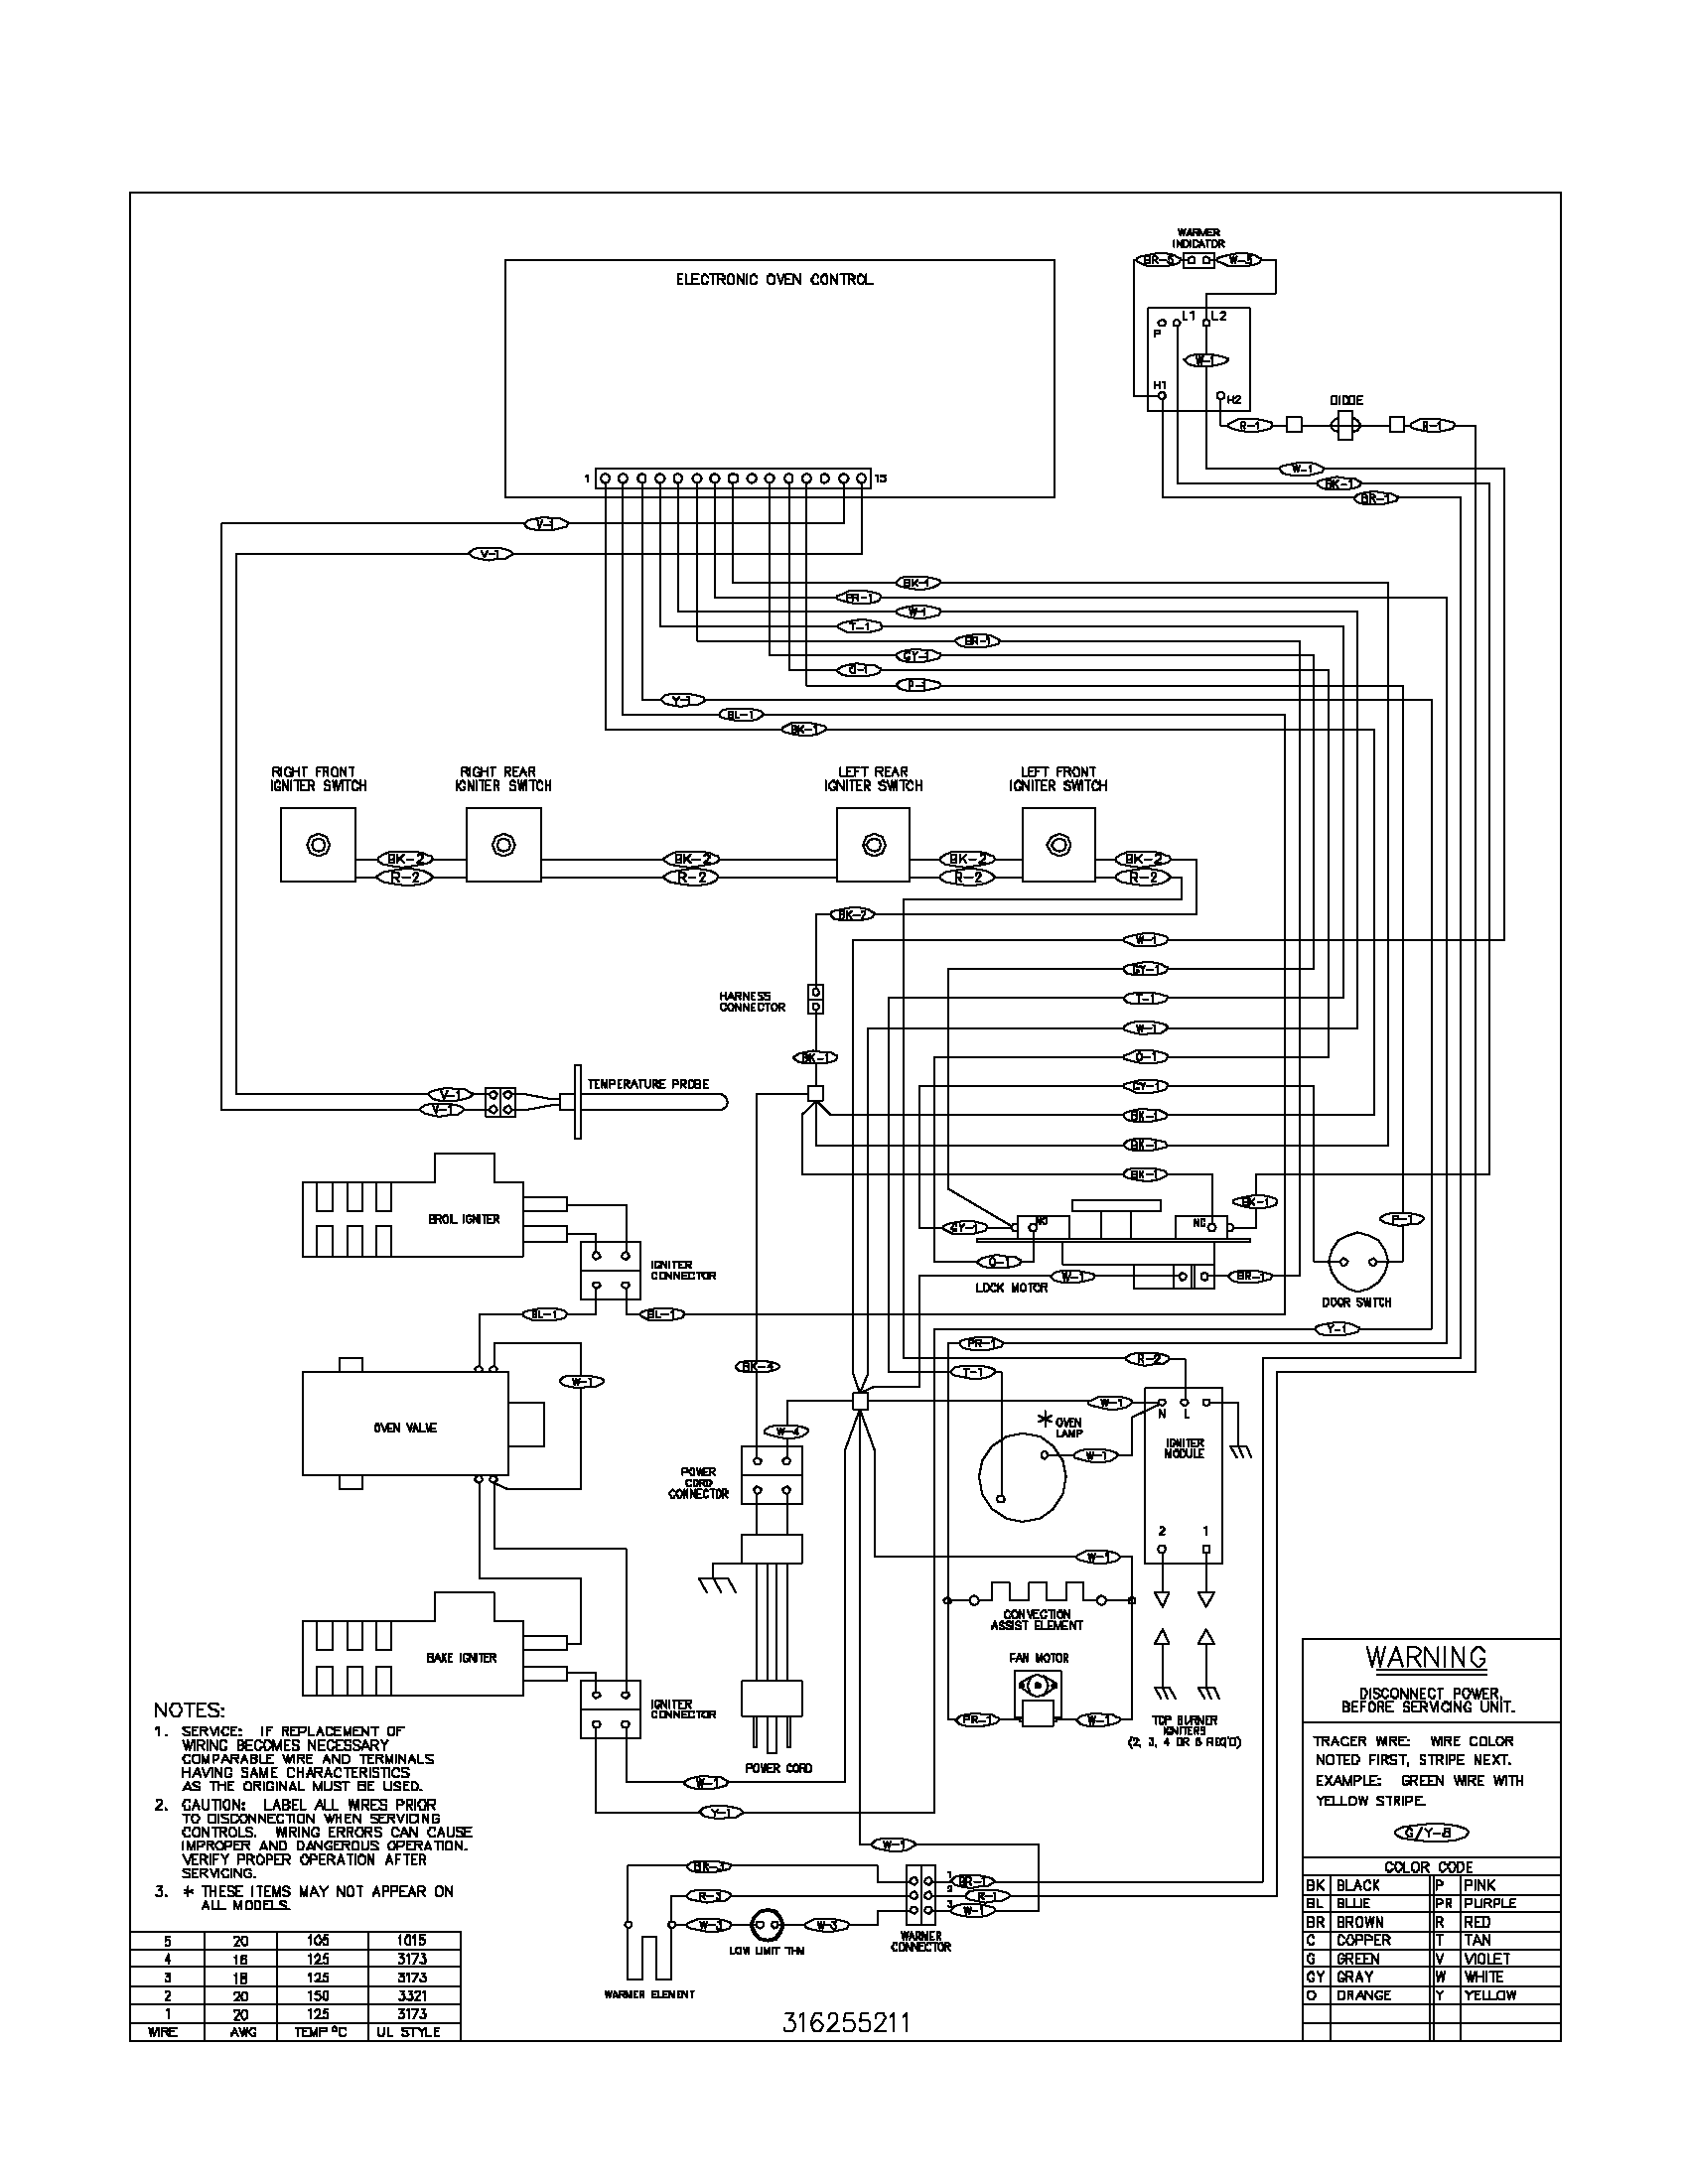 electric fireplace wiring electric image wiring wiring diagram for electric range the wiring diagram on electric fireplace wiring